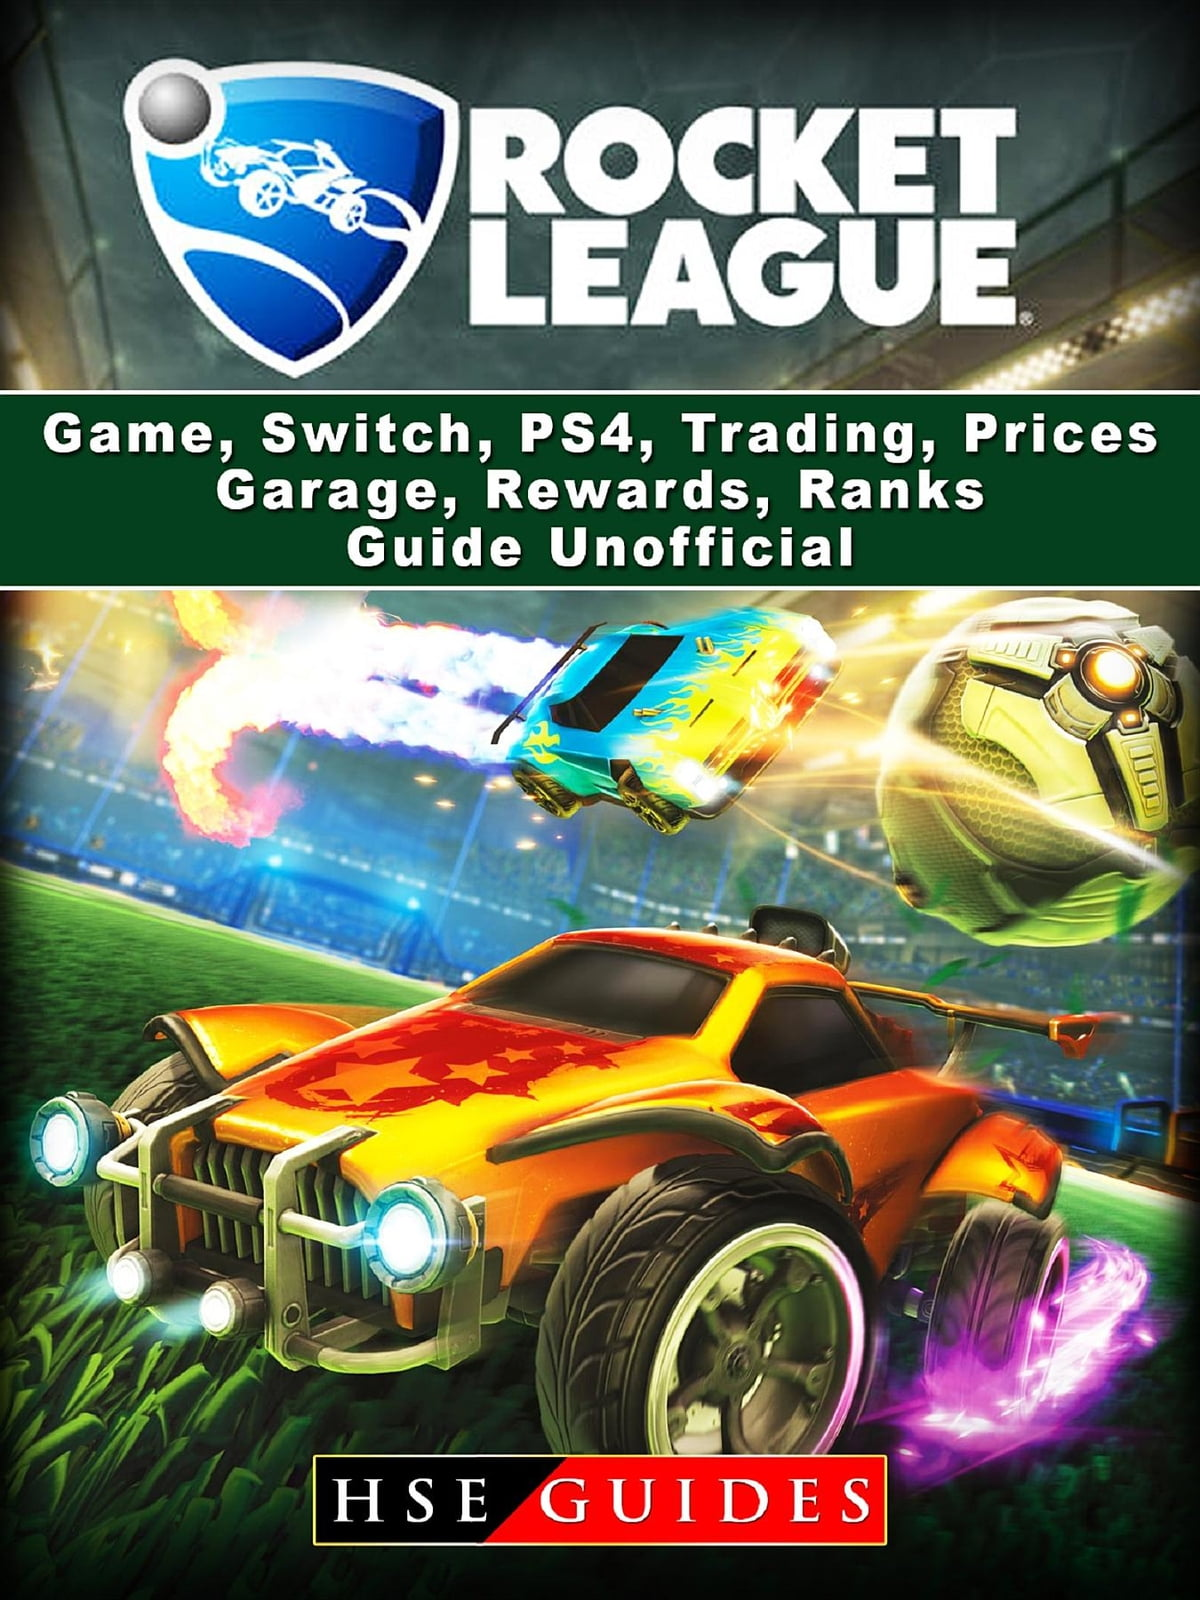 Rocket League Game, Switch, PS4, Trading, Prices, Garage, Rewards, Ranks,  Guide Unofficial ebook by HSE Guides - Rakuten Kobo